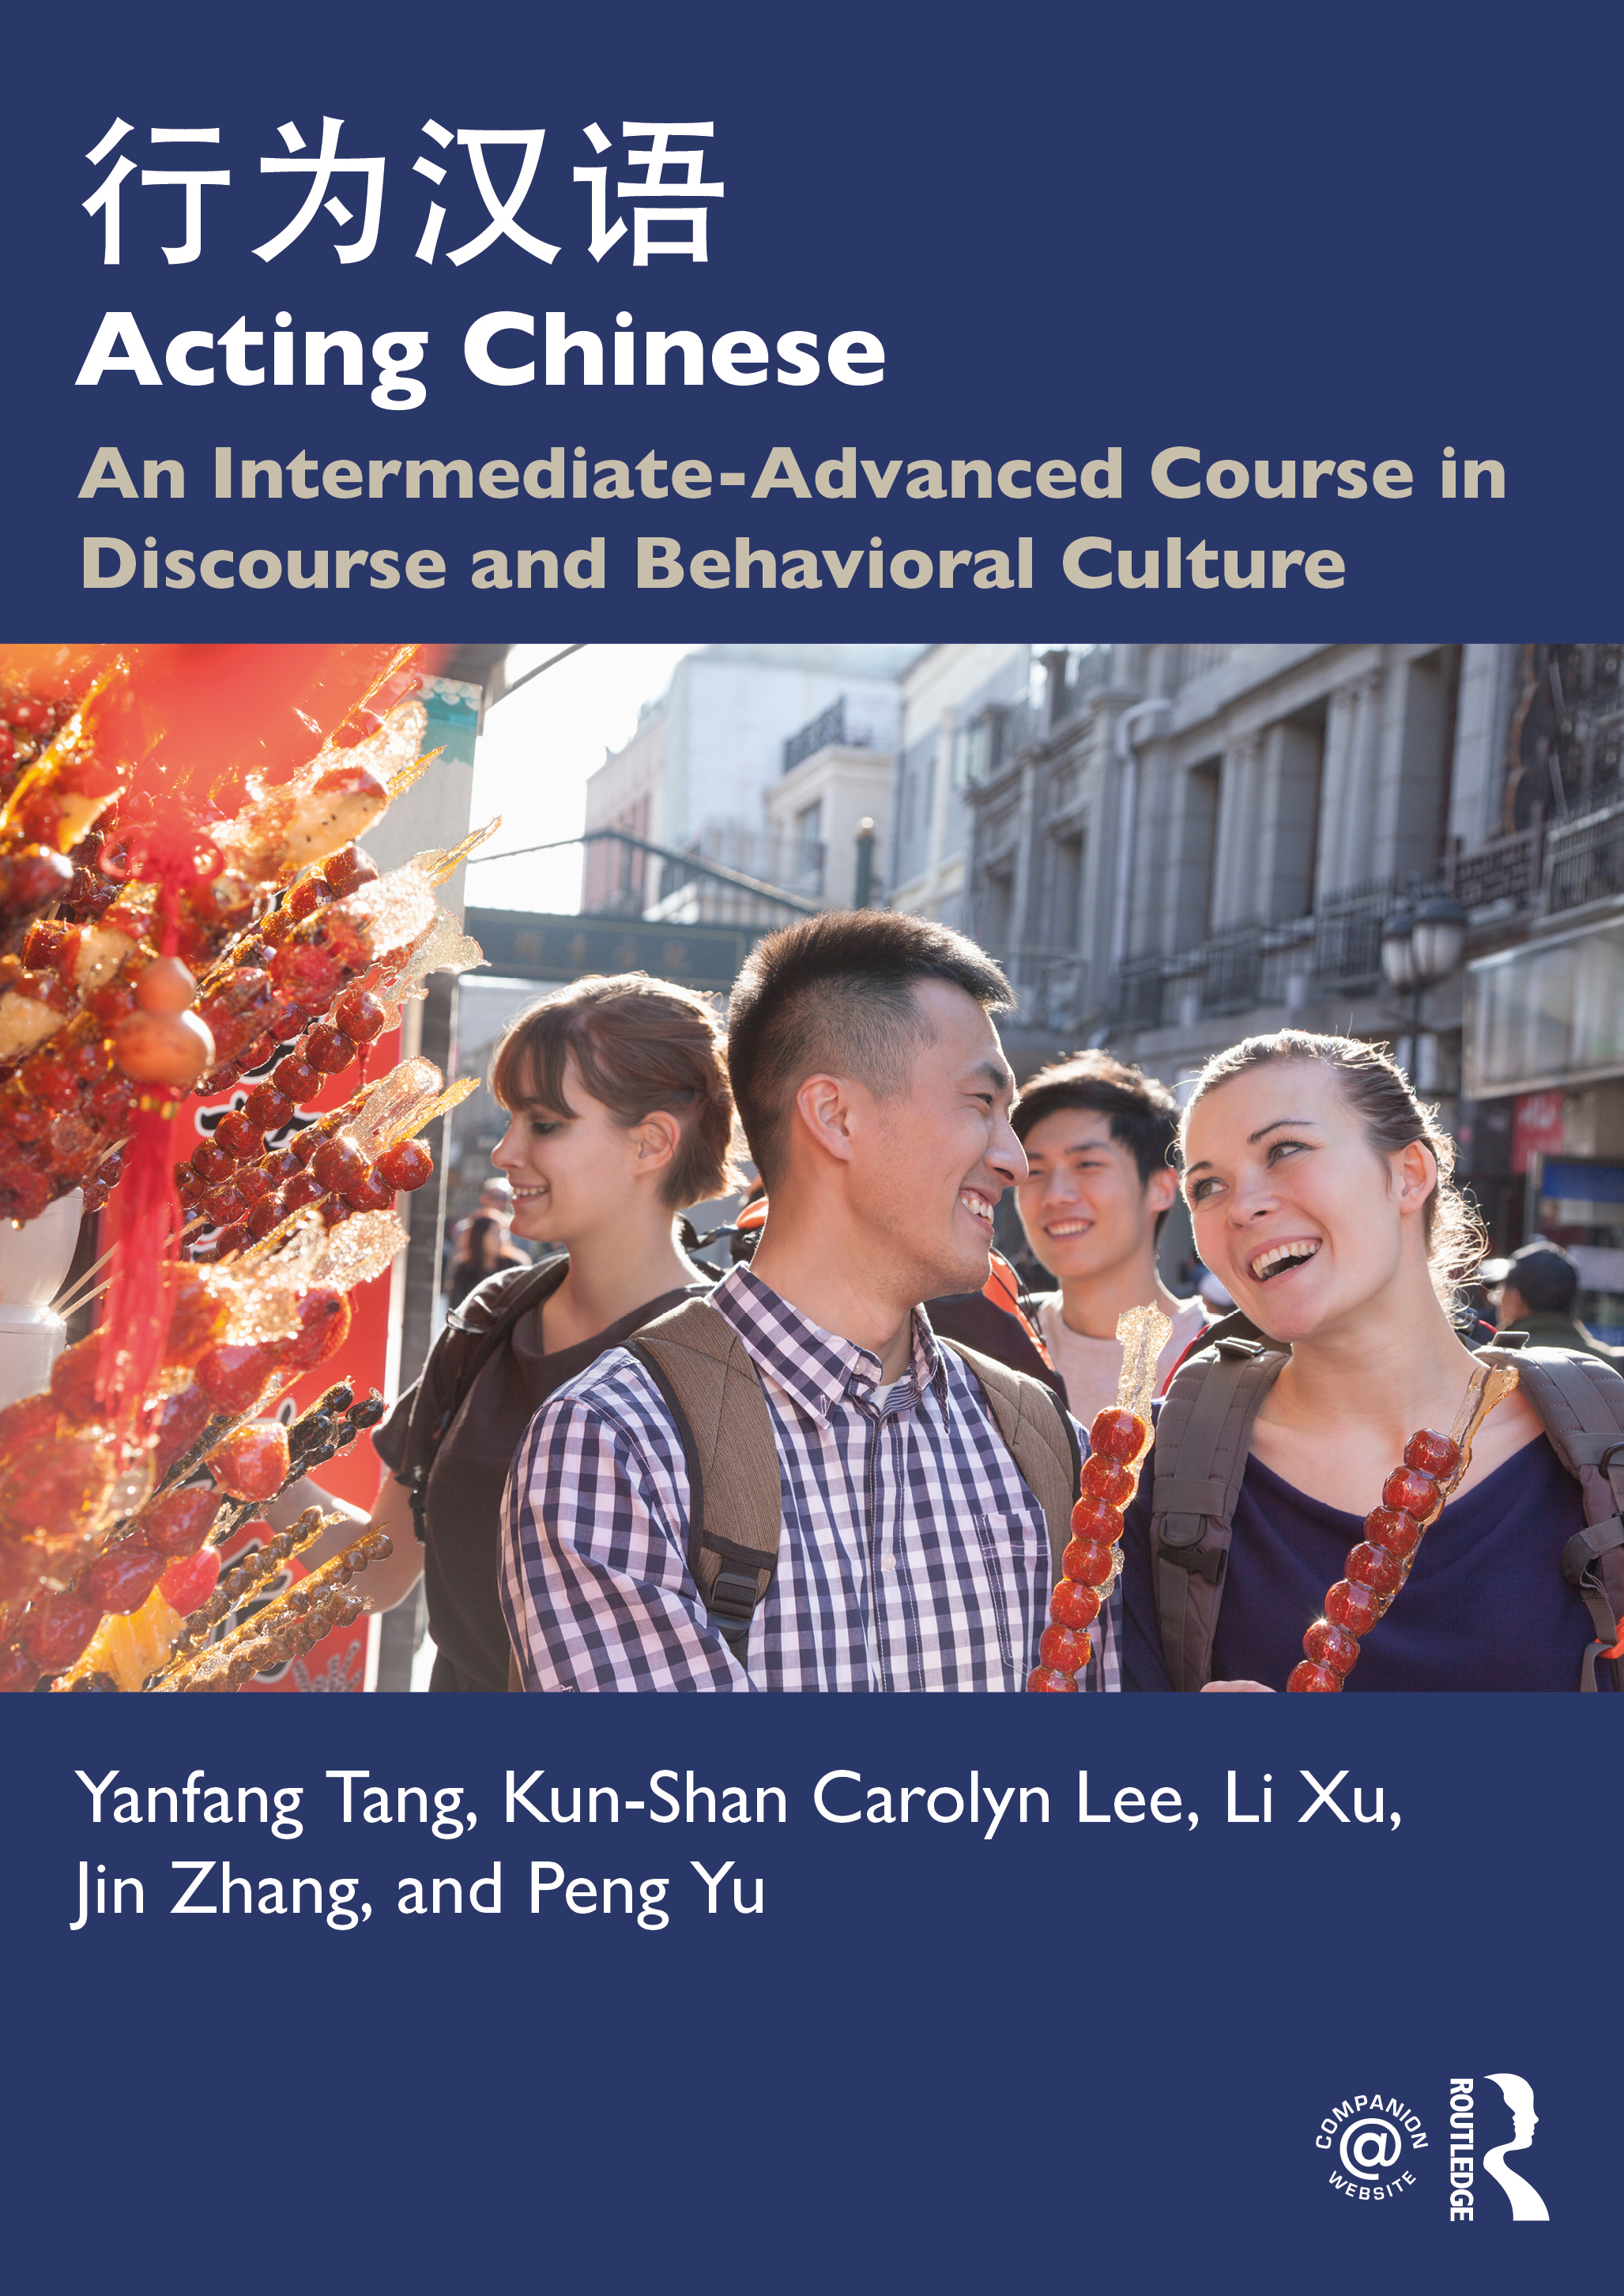 Acting Chinese: An Intermediate-Advanced Course in Discourse and Behavioral Culture 《行为汉语》 book cover